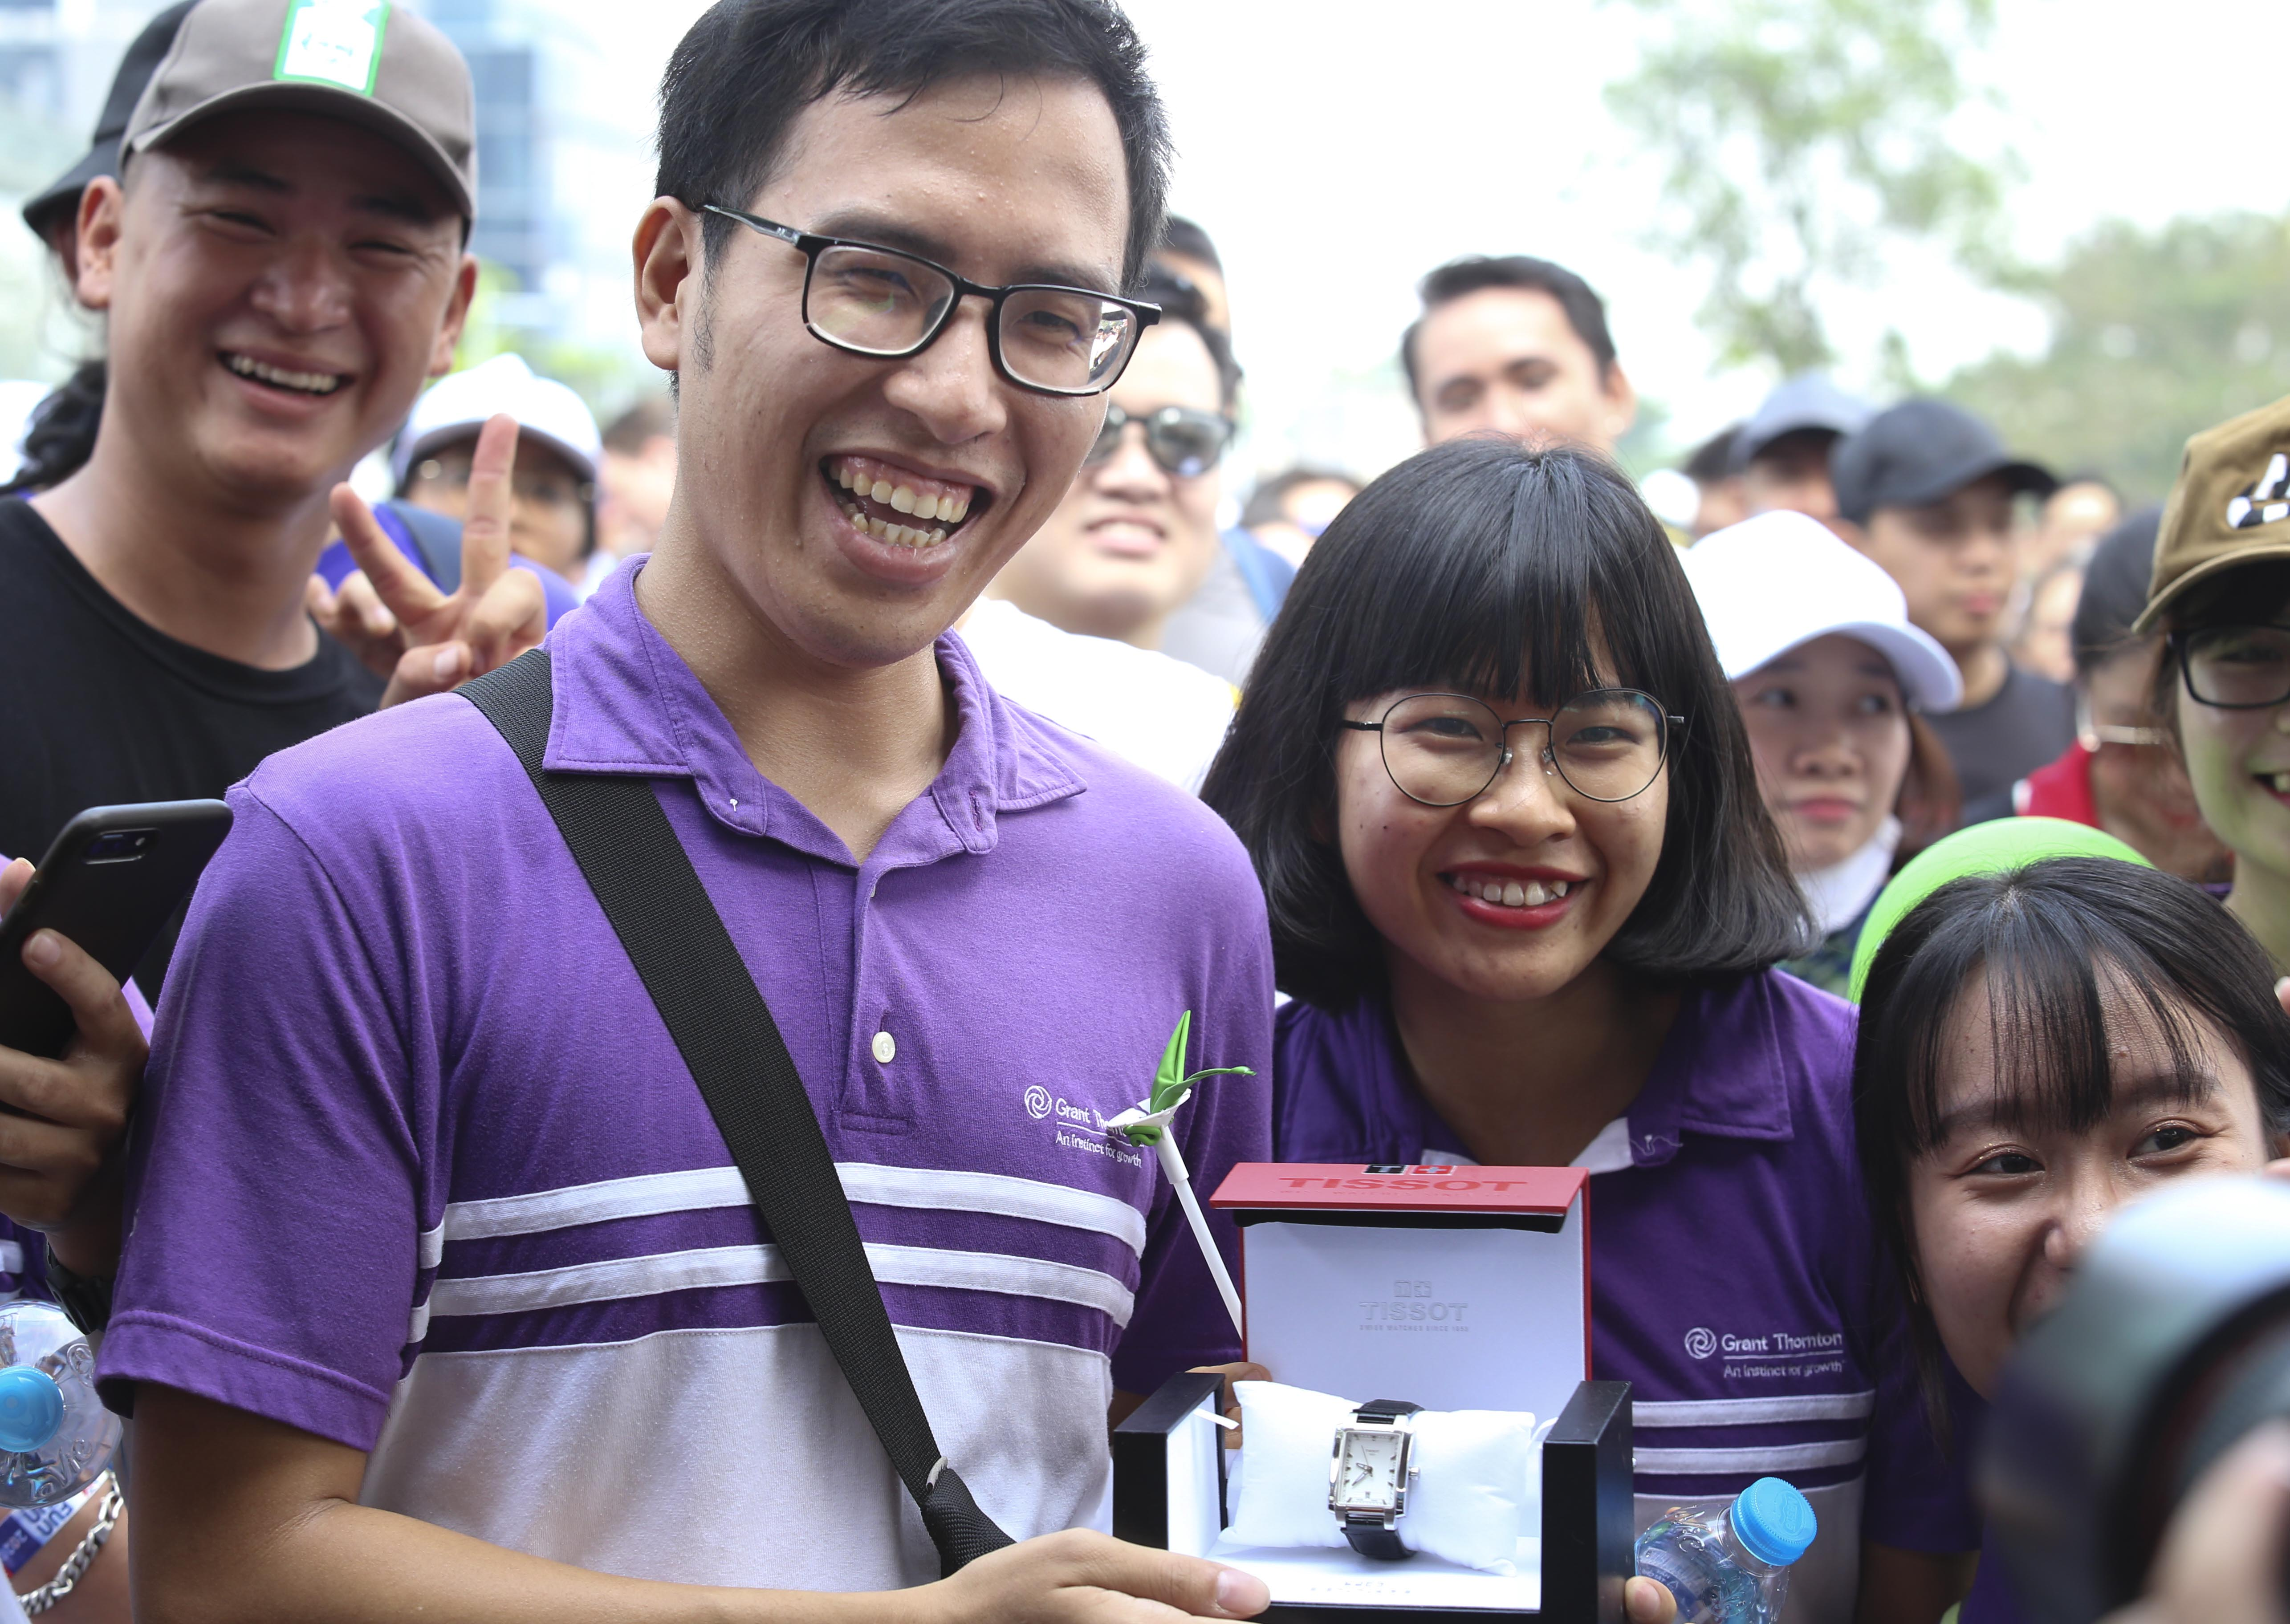 One of the fortunate participants winning lucky draw prizes at the 20th BritCham Charity Fun Run in Ho Chi Minh City on November 15,2020. Photo: Duc Khue/ Tuoi Tre